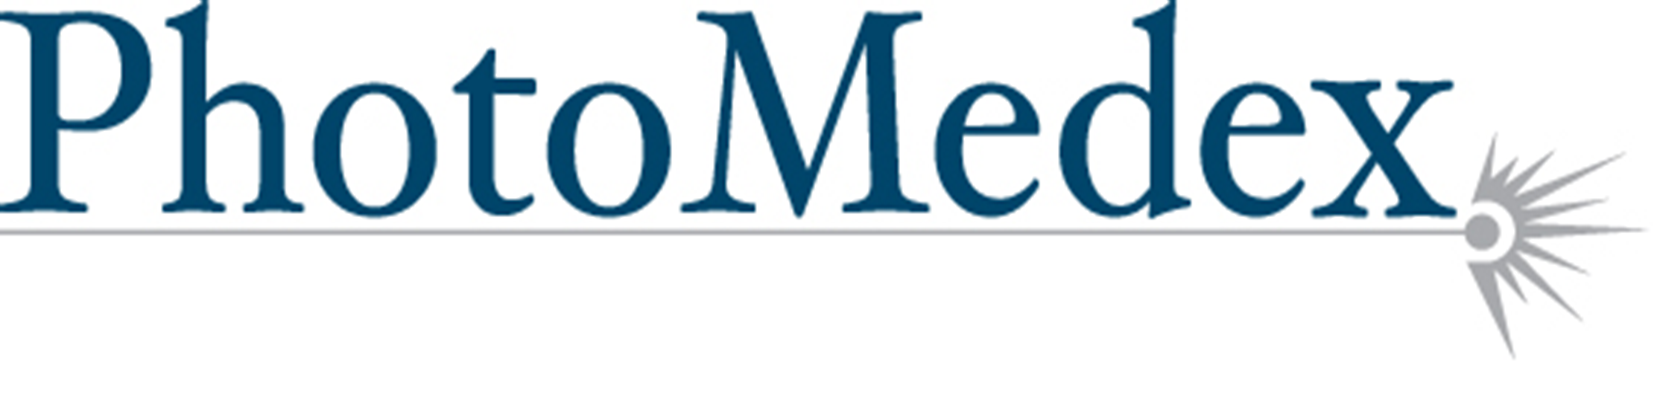 PhotoMedex Logo